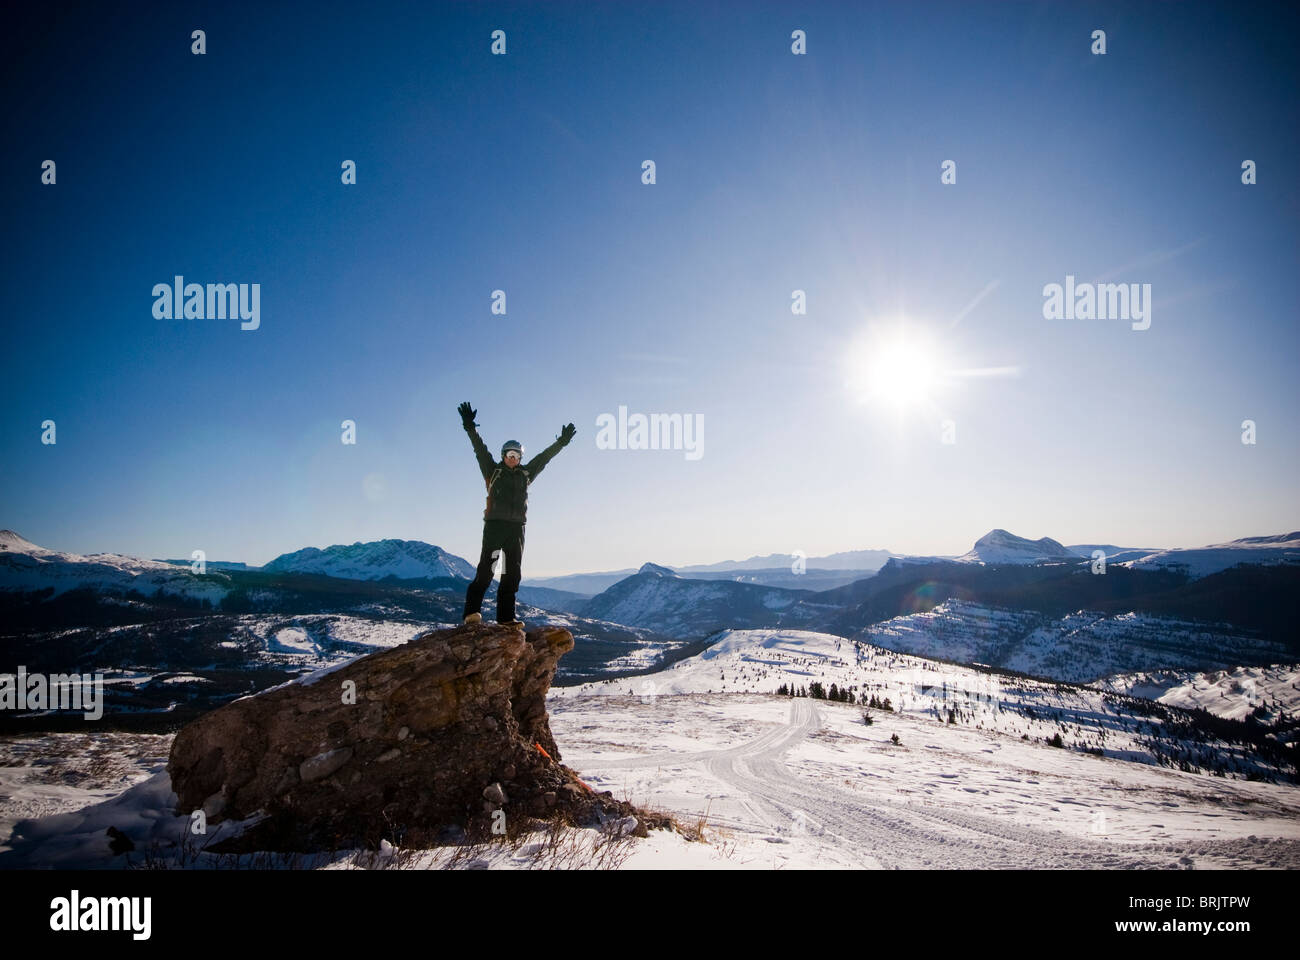 A middle aged man celebrates reaching a high point overlooking a snowy valley in the Rocky Mountains. - Stock Image